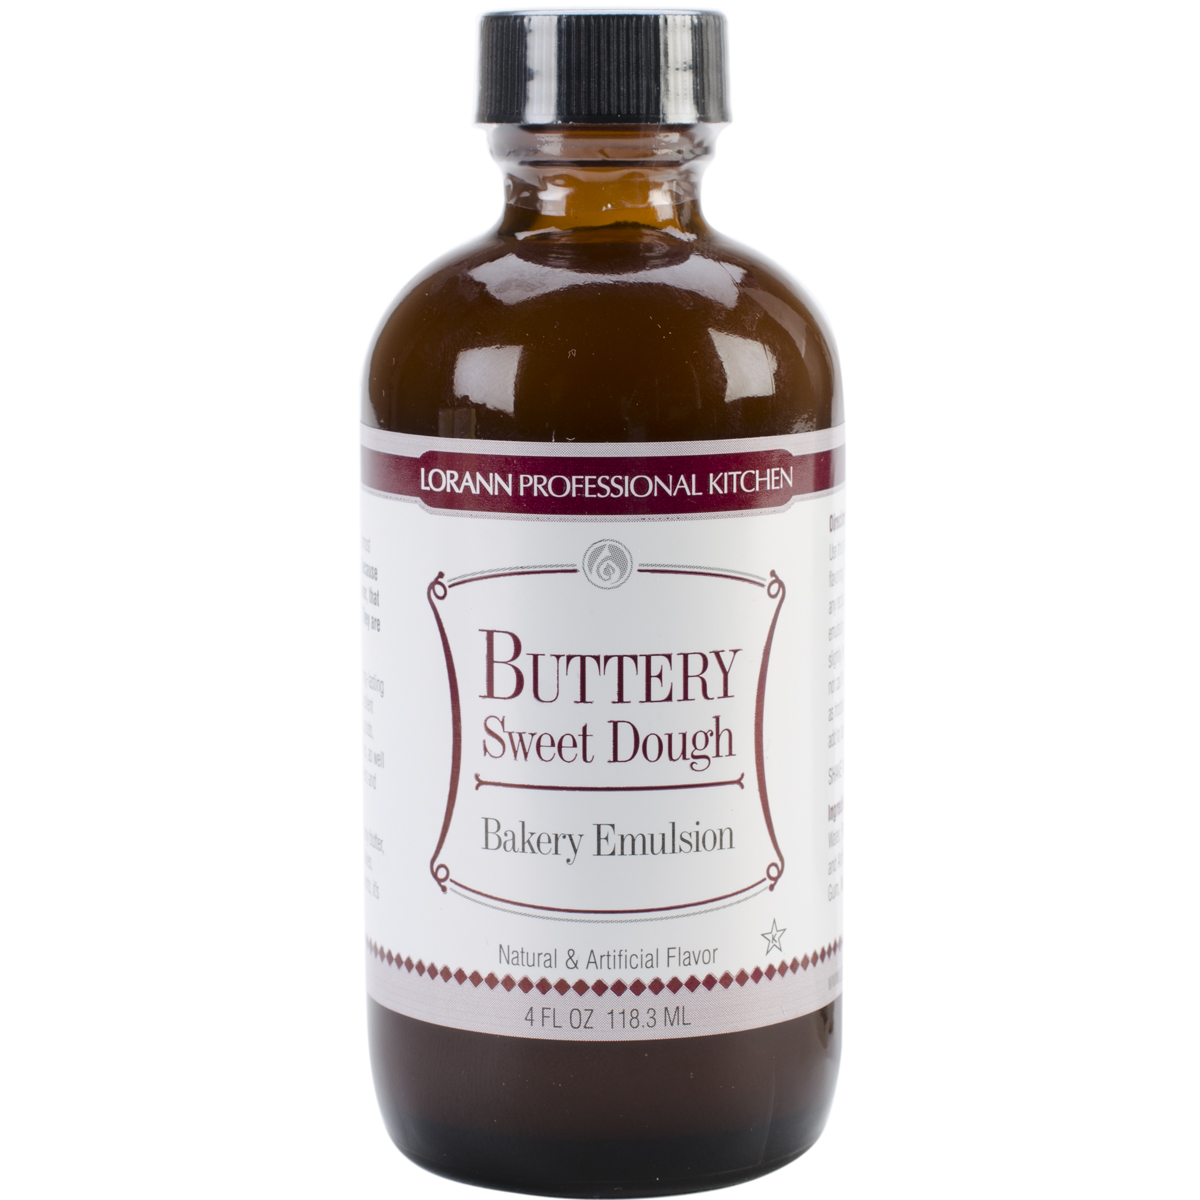 Lorann Oils Bakery Emulsion Buttery Sweet Dough